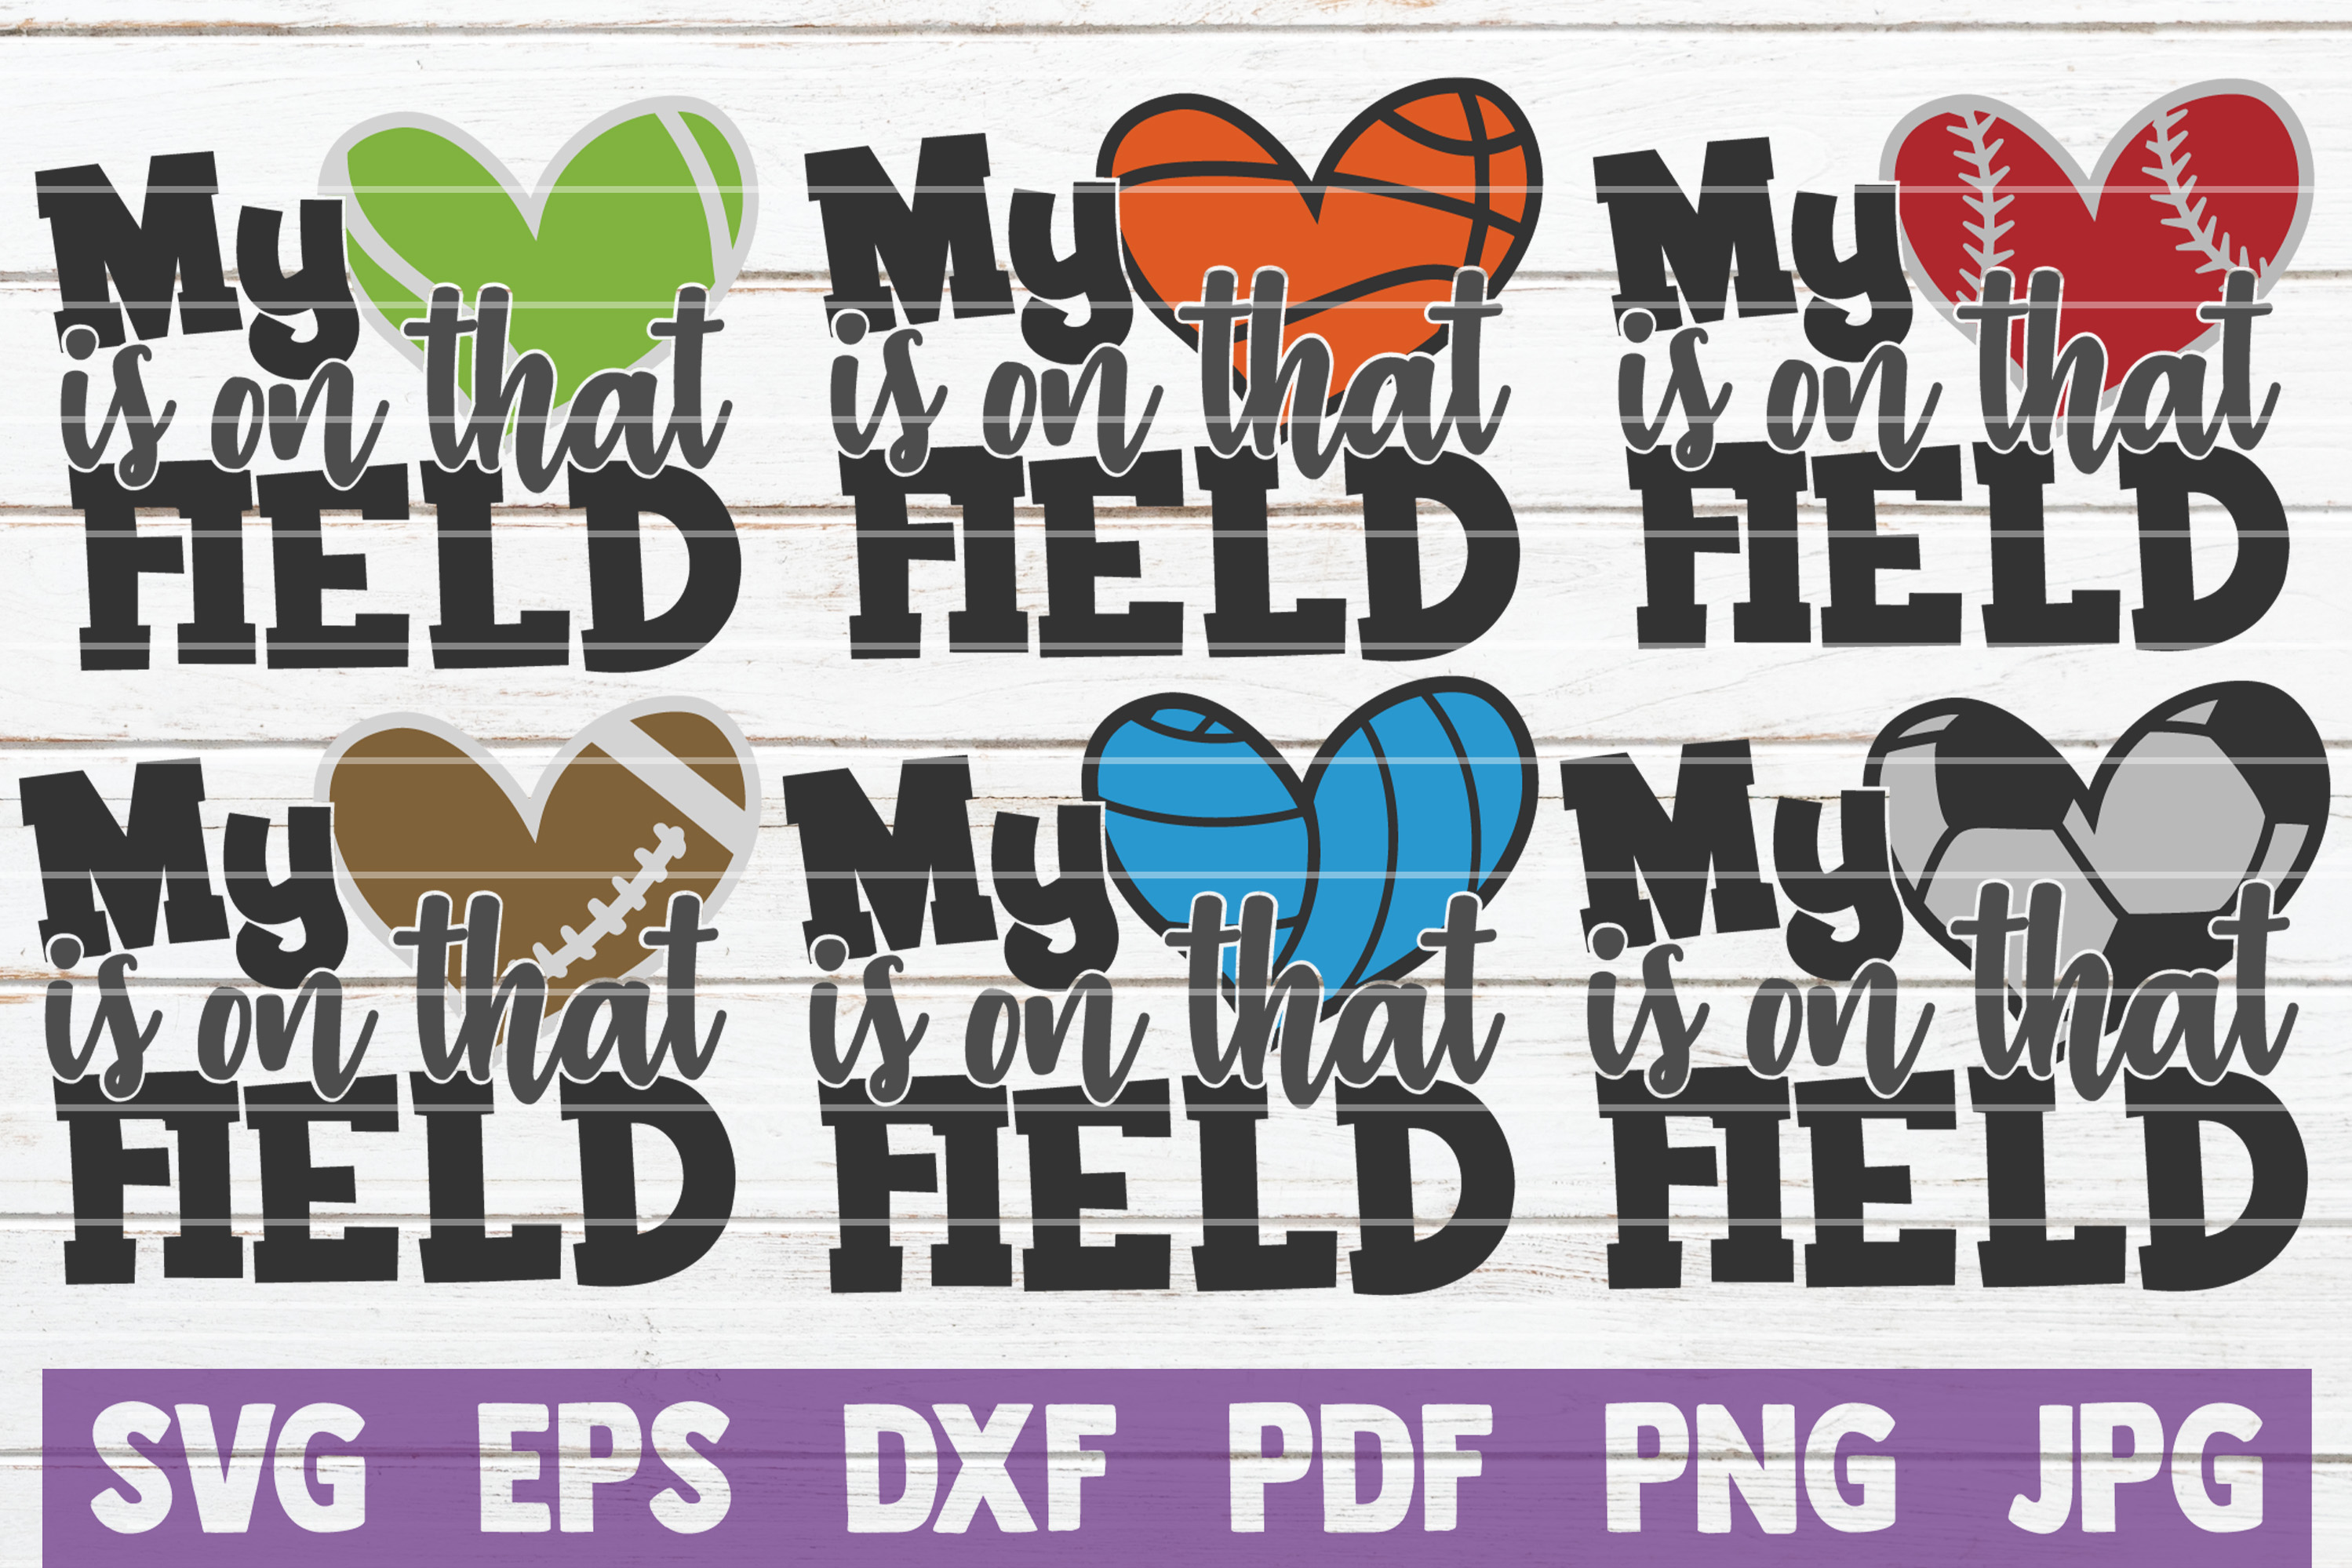 Cricut Infinity Heart Svg Free Svg Cut Files Create Your Diy Projects Using Your Cricut Explore Silhouette And More The Free Cut Files Include Svg Dxf Eps And Png Files